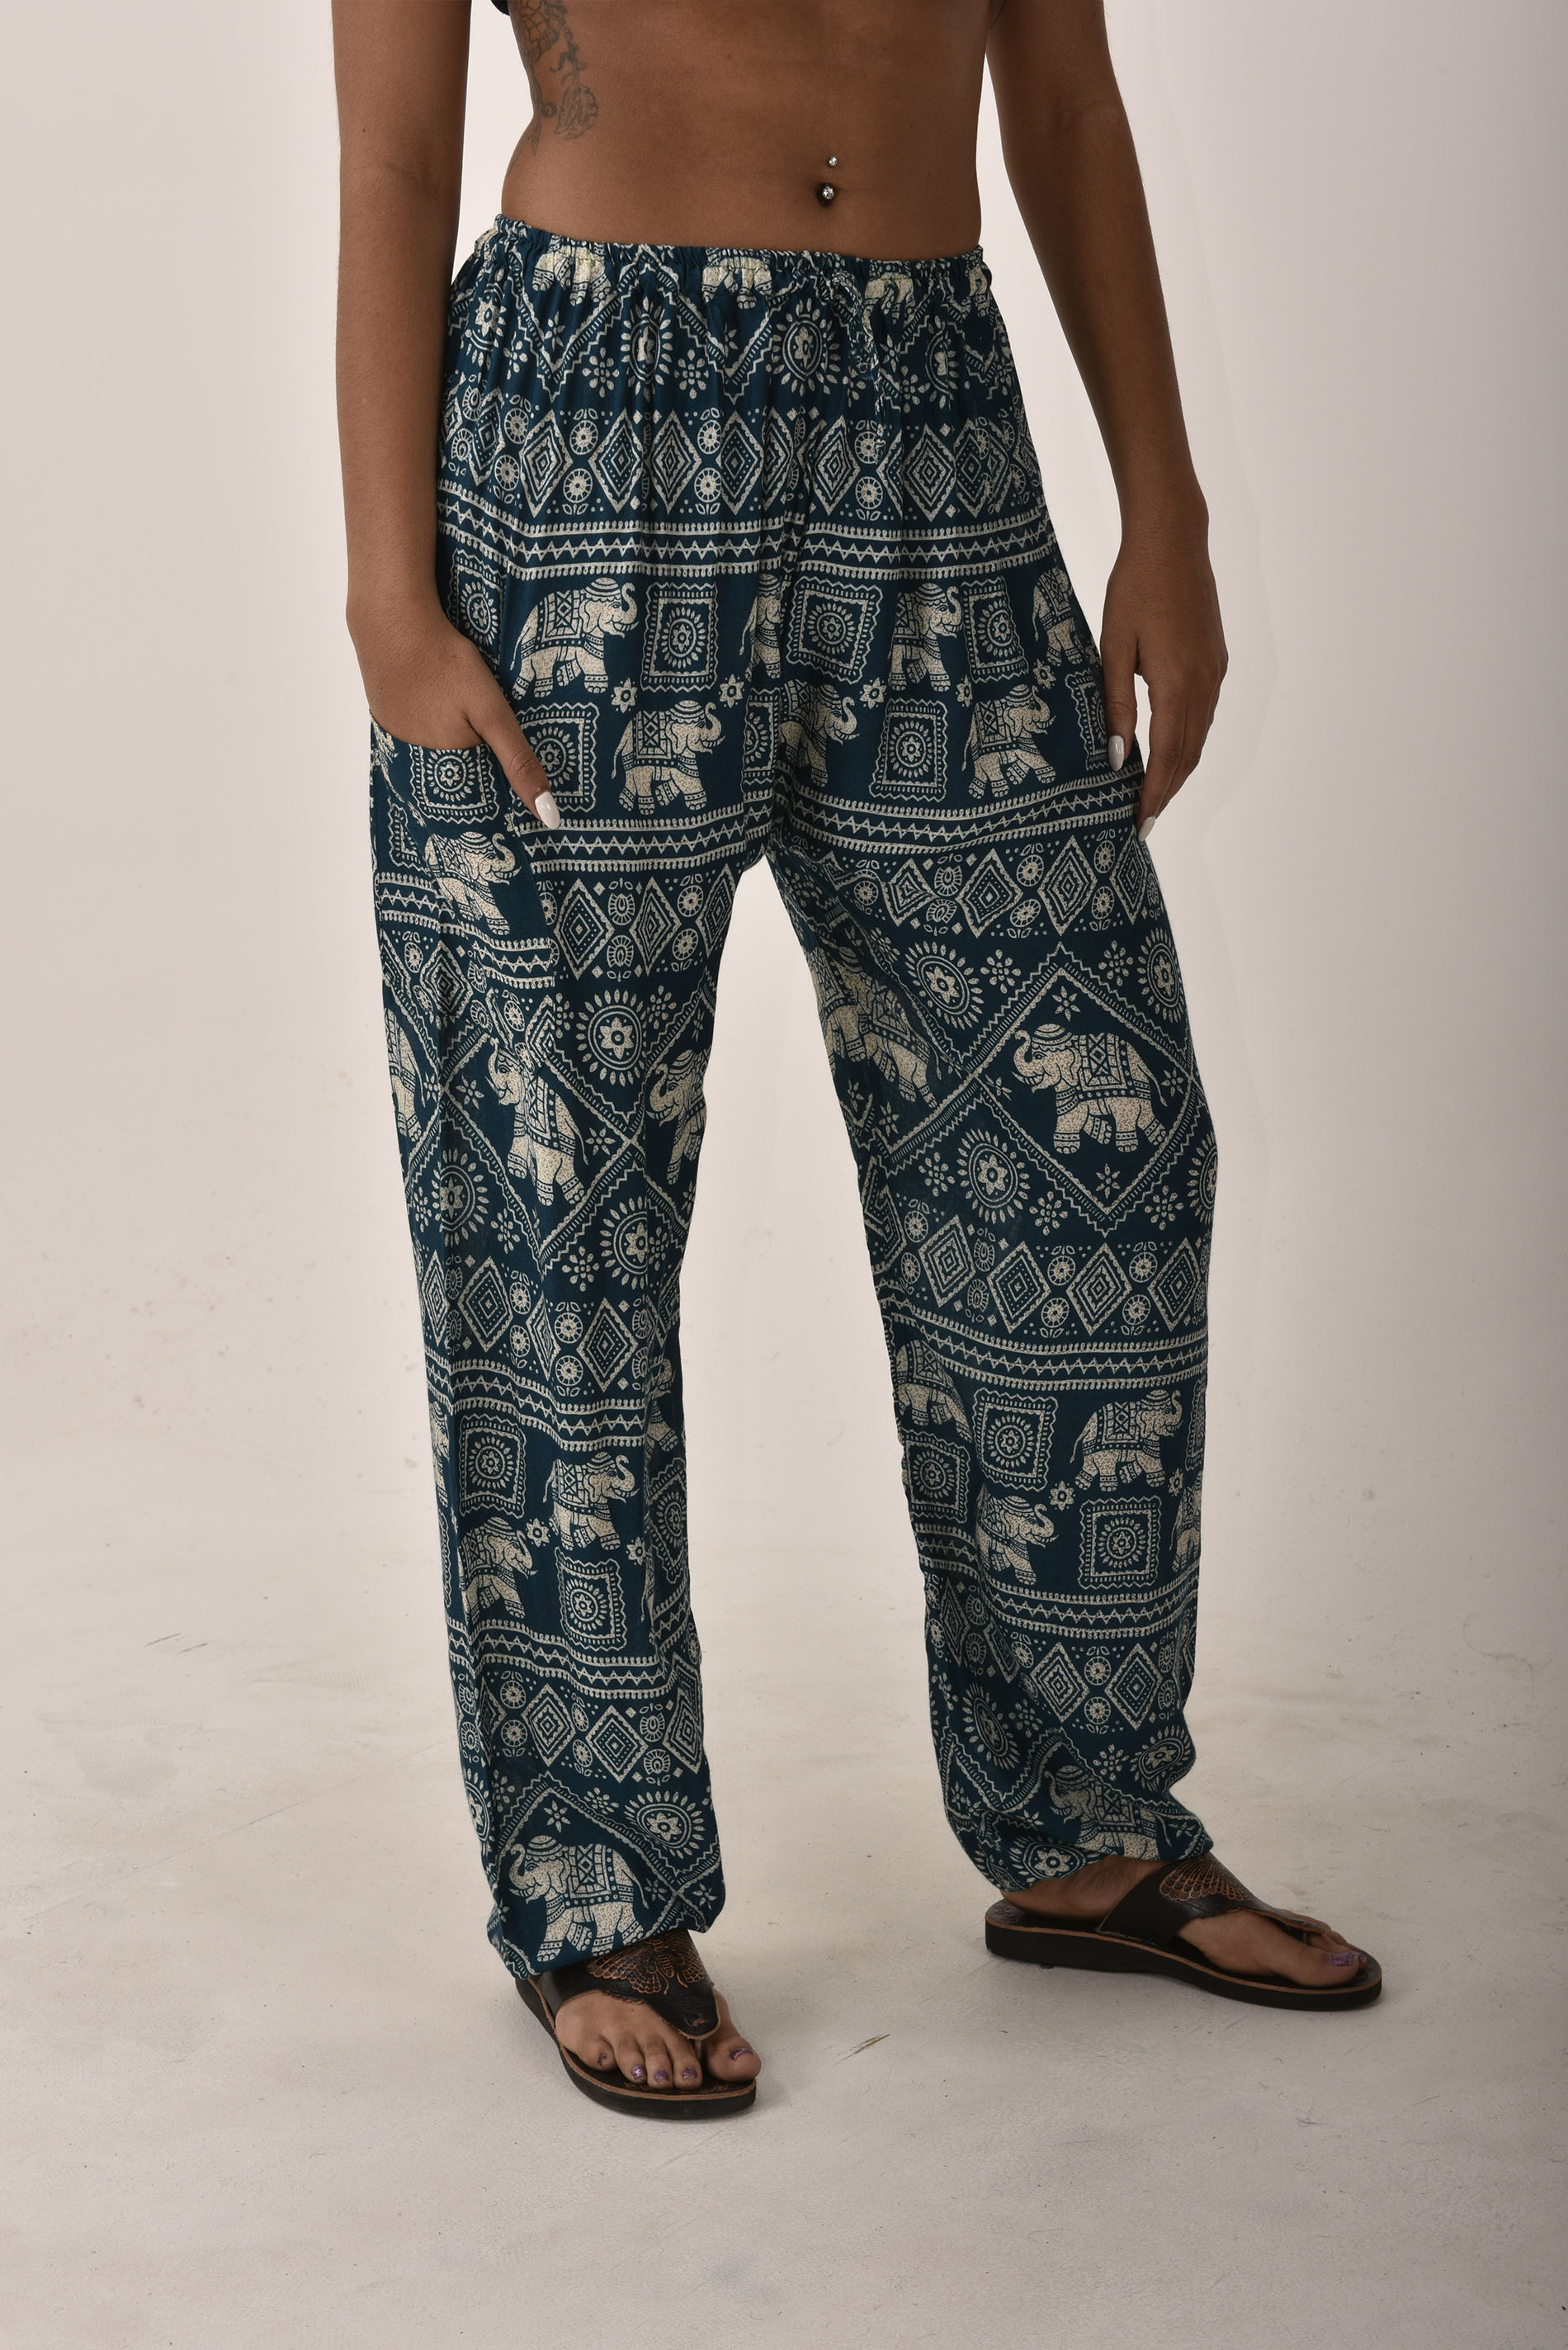 Drawstring Pants Elephant Print, Teal - 3096T